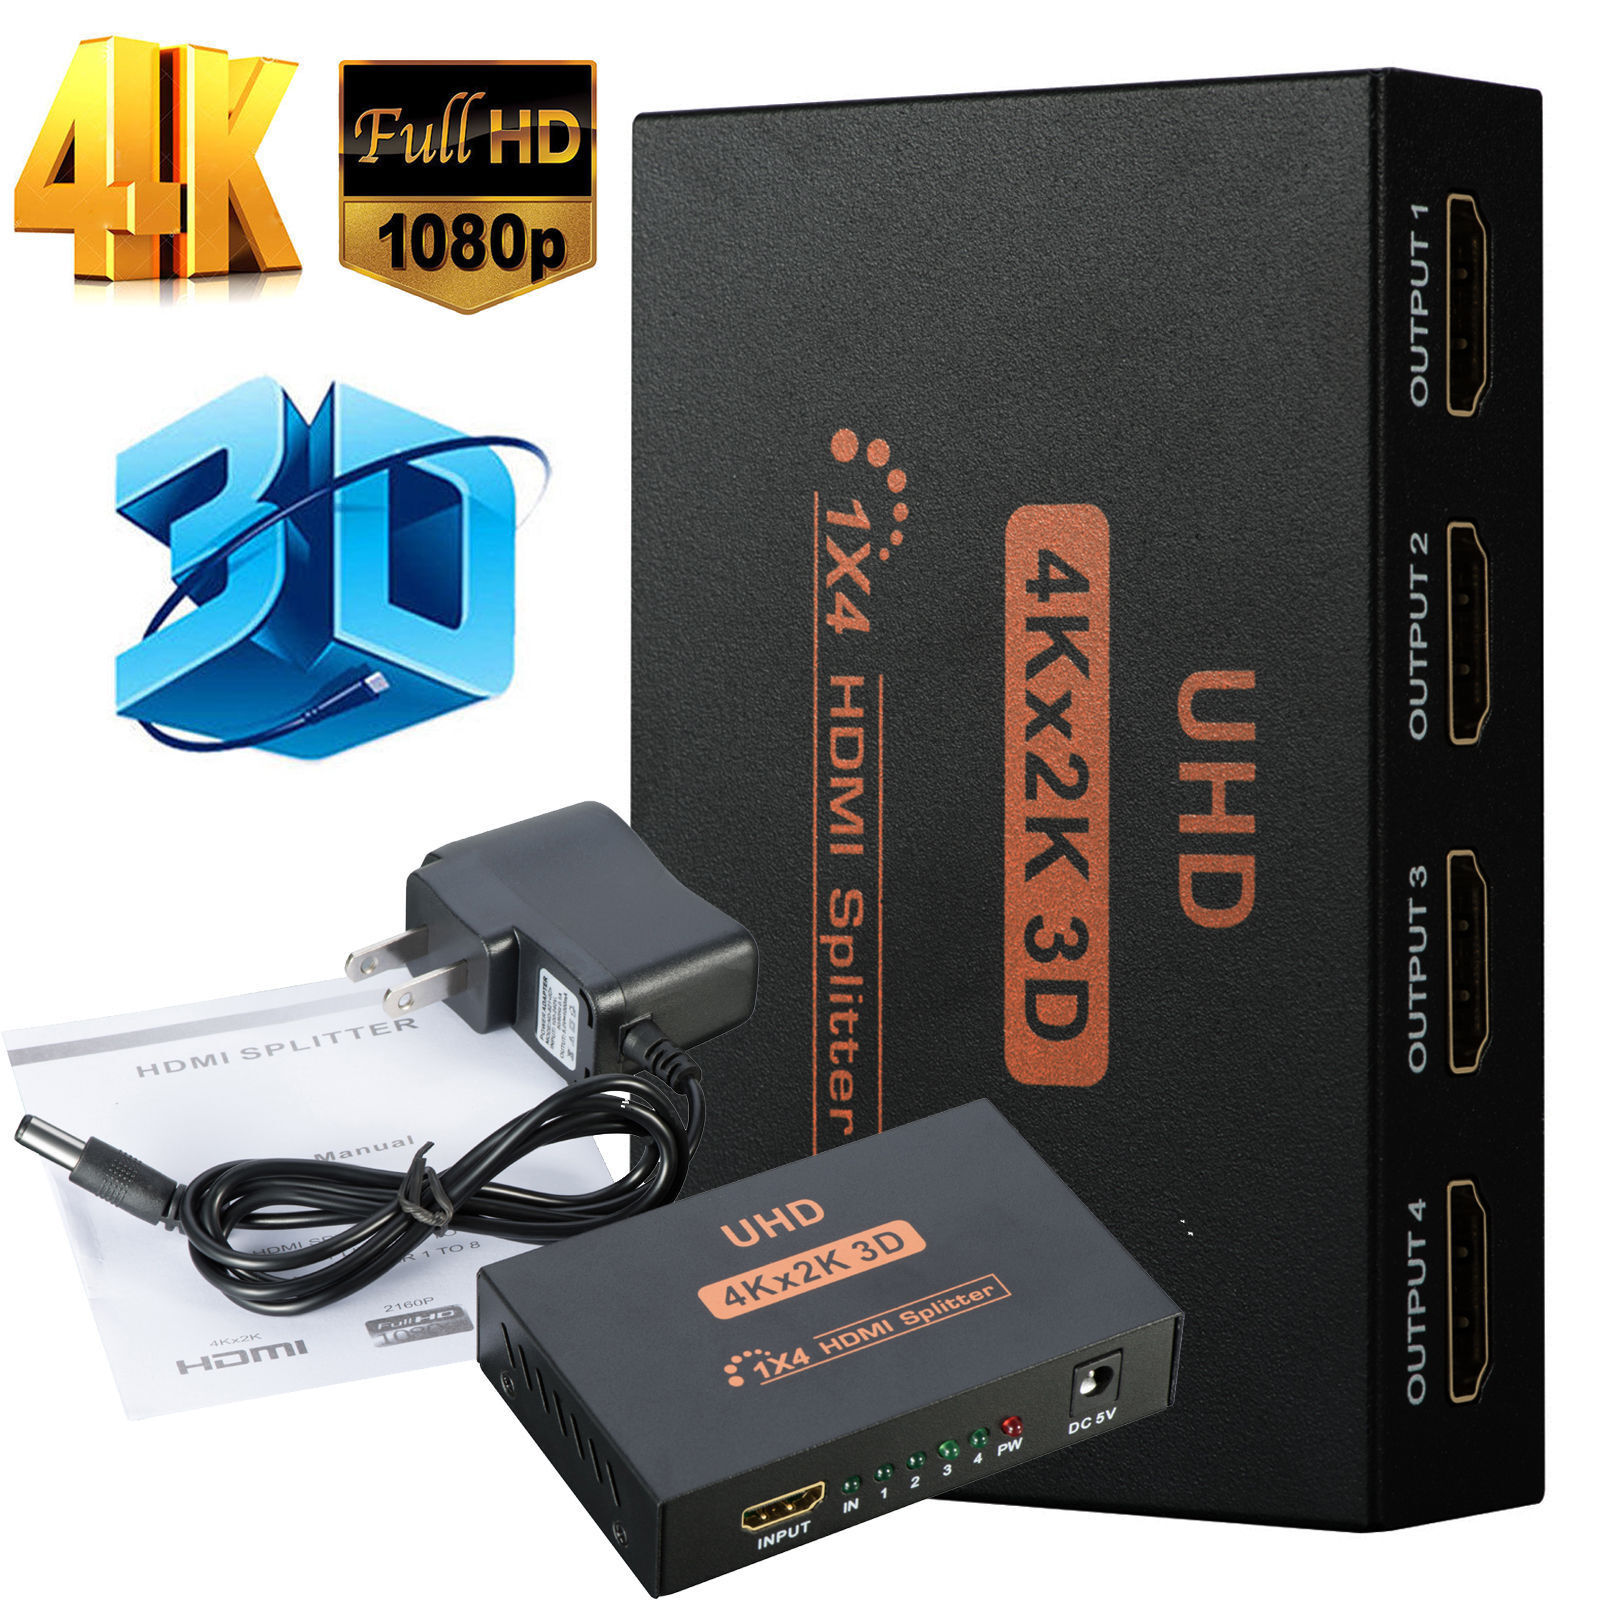 Full HD HDMI Splitter 1X4 4 Port Hub Repeater Amplifier v1.4 3D 1080p 1 in 4 out Consumer Electronics